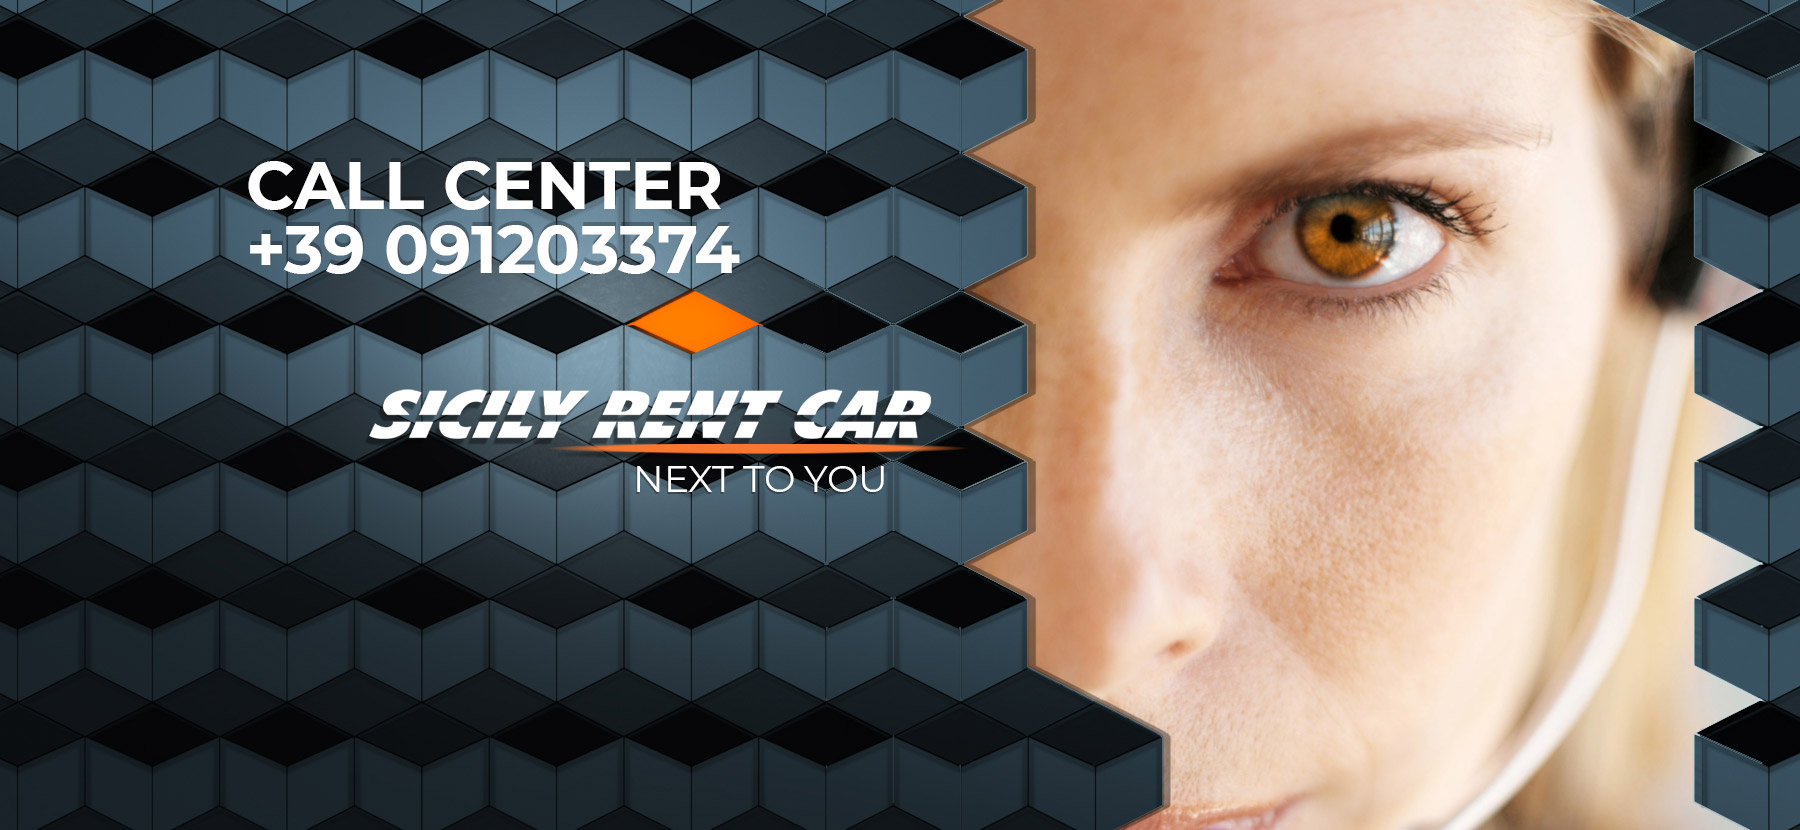 Call Center Sicily Rent Car